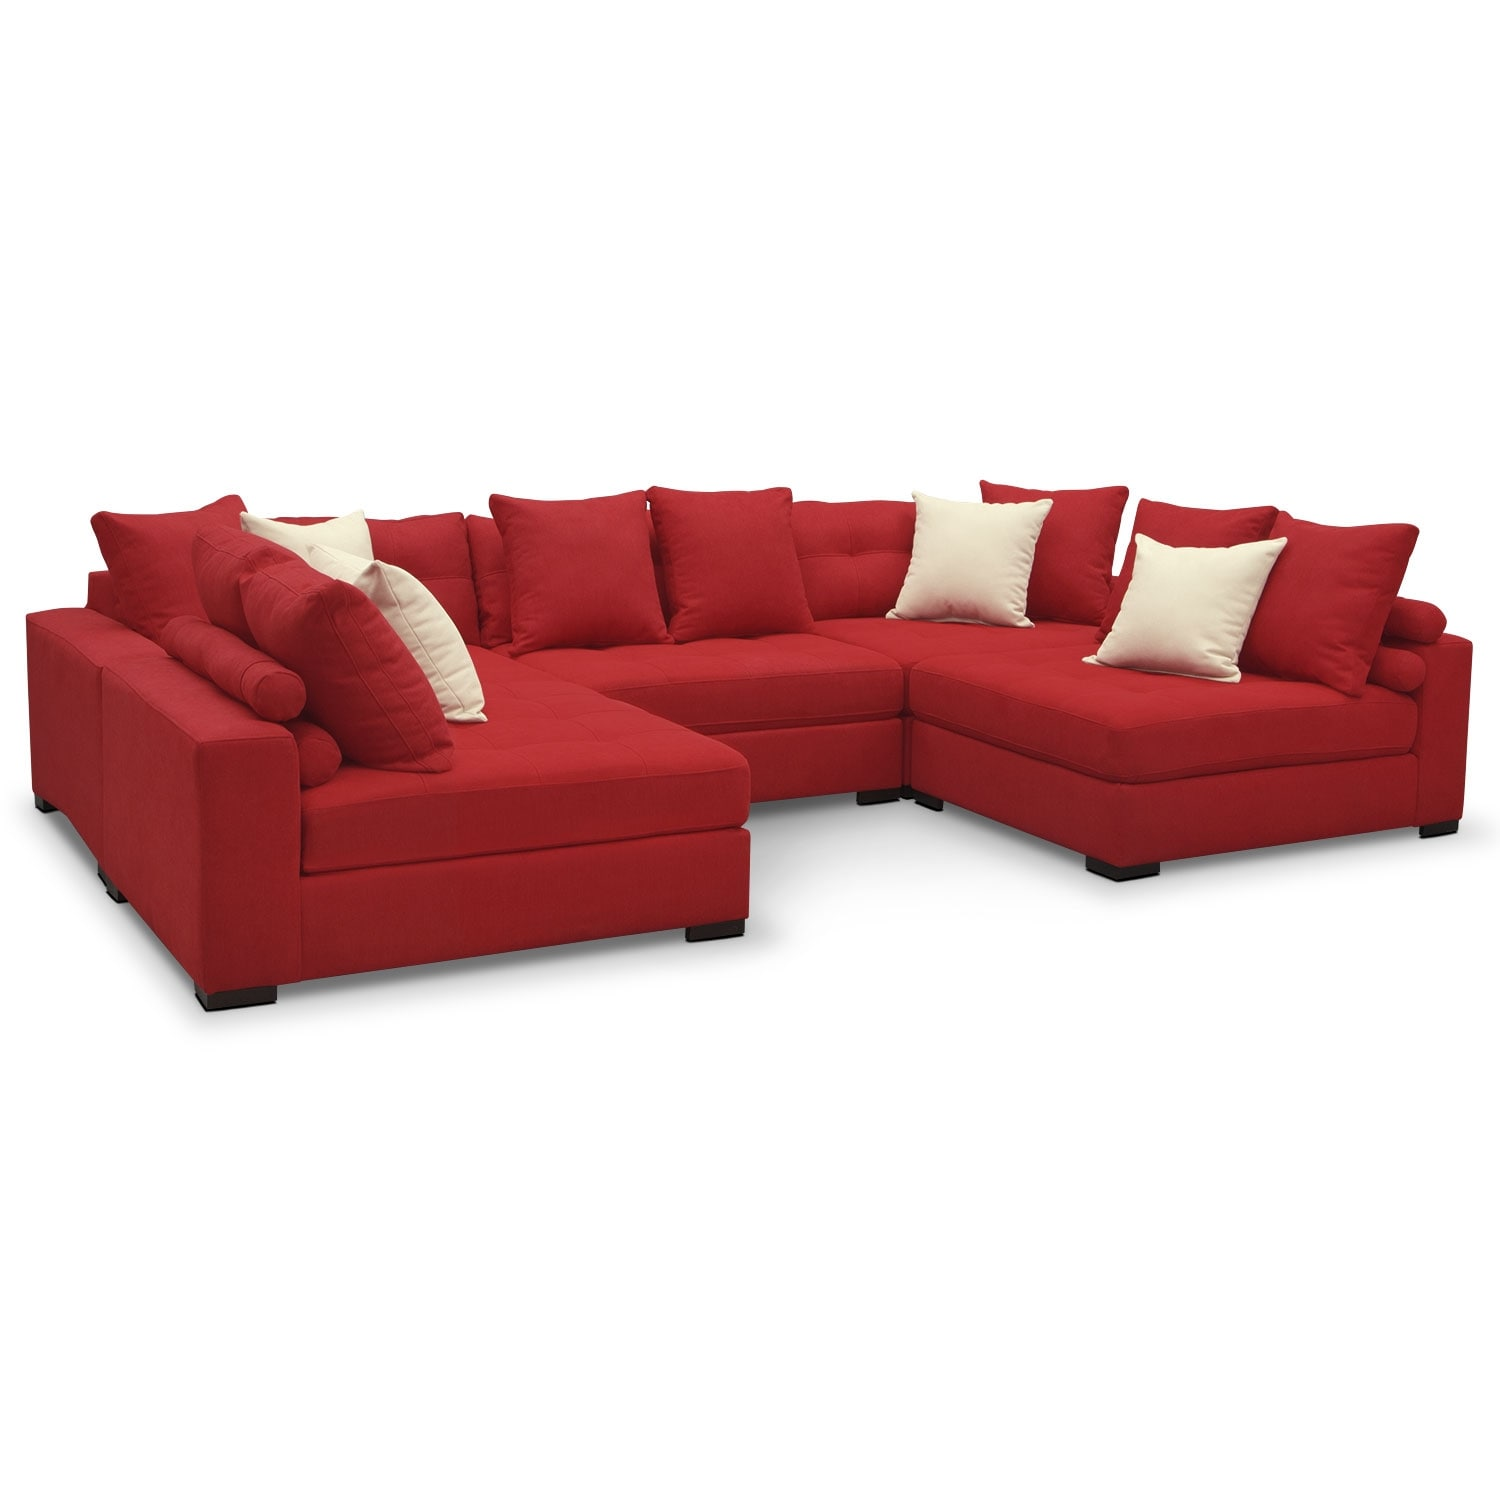 Living Room Furniture   Venti 5 Piece Sectional   Red